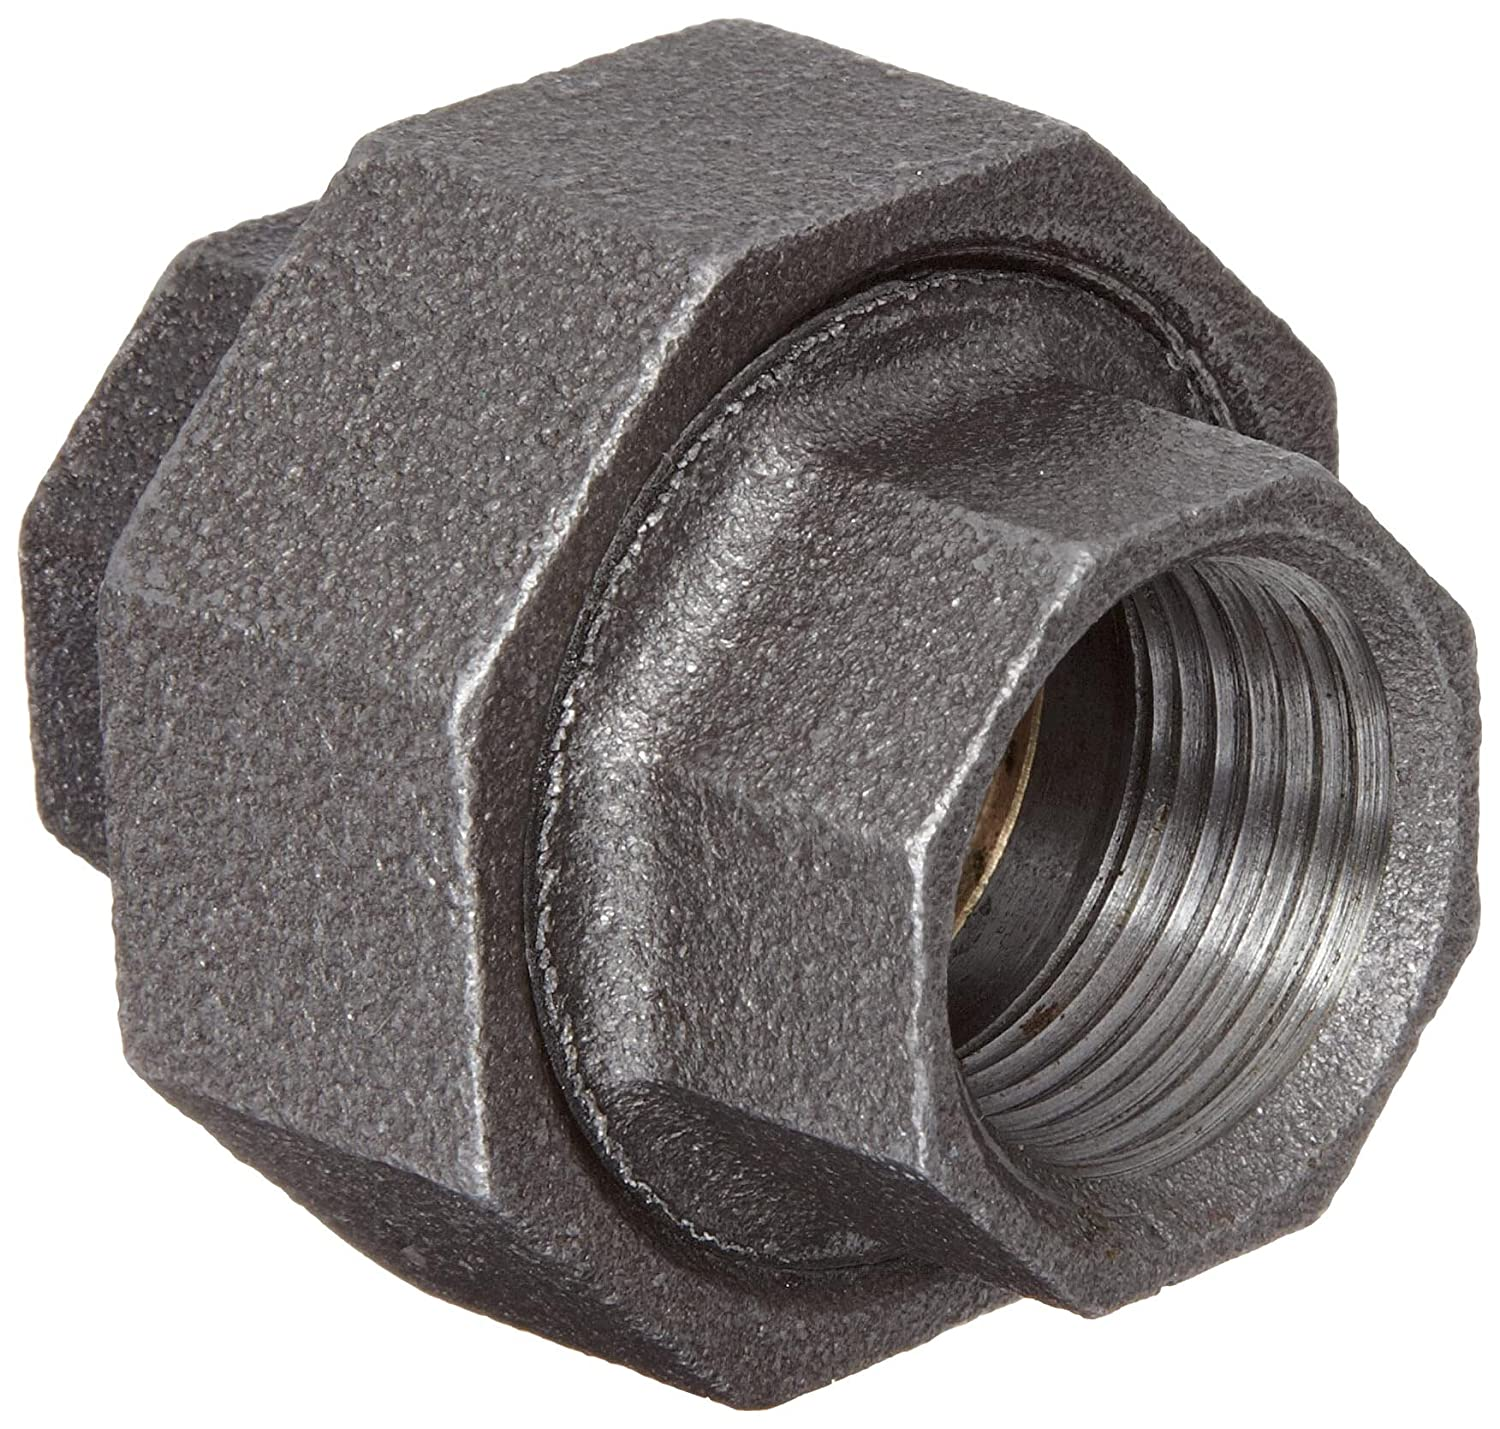 Malleable Iron Pipe Fitting 1//2 NPT Female Black Finish Union Anvil 8700162954